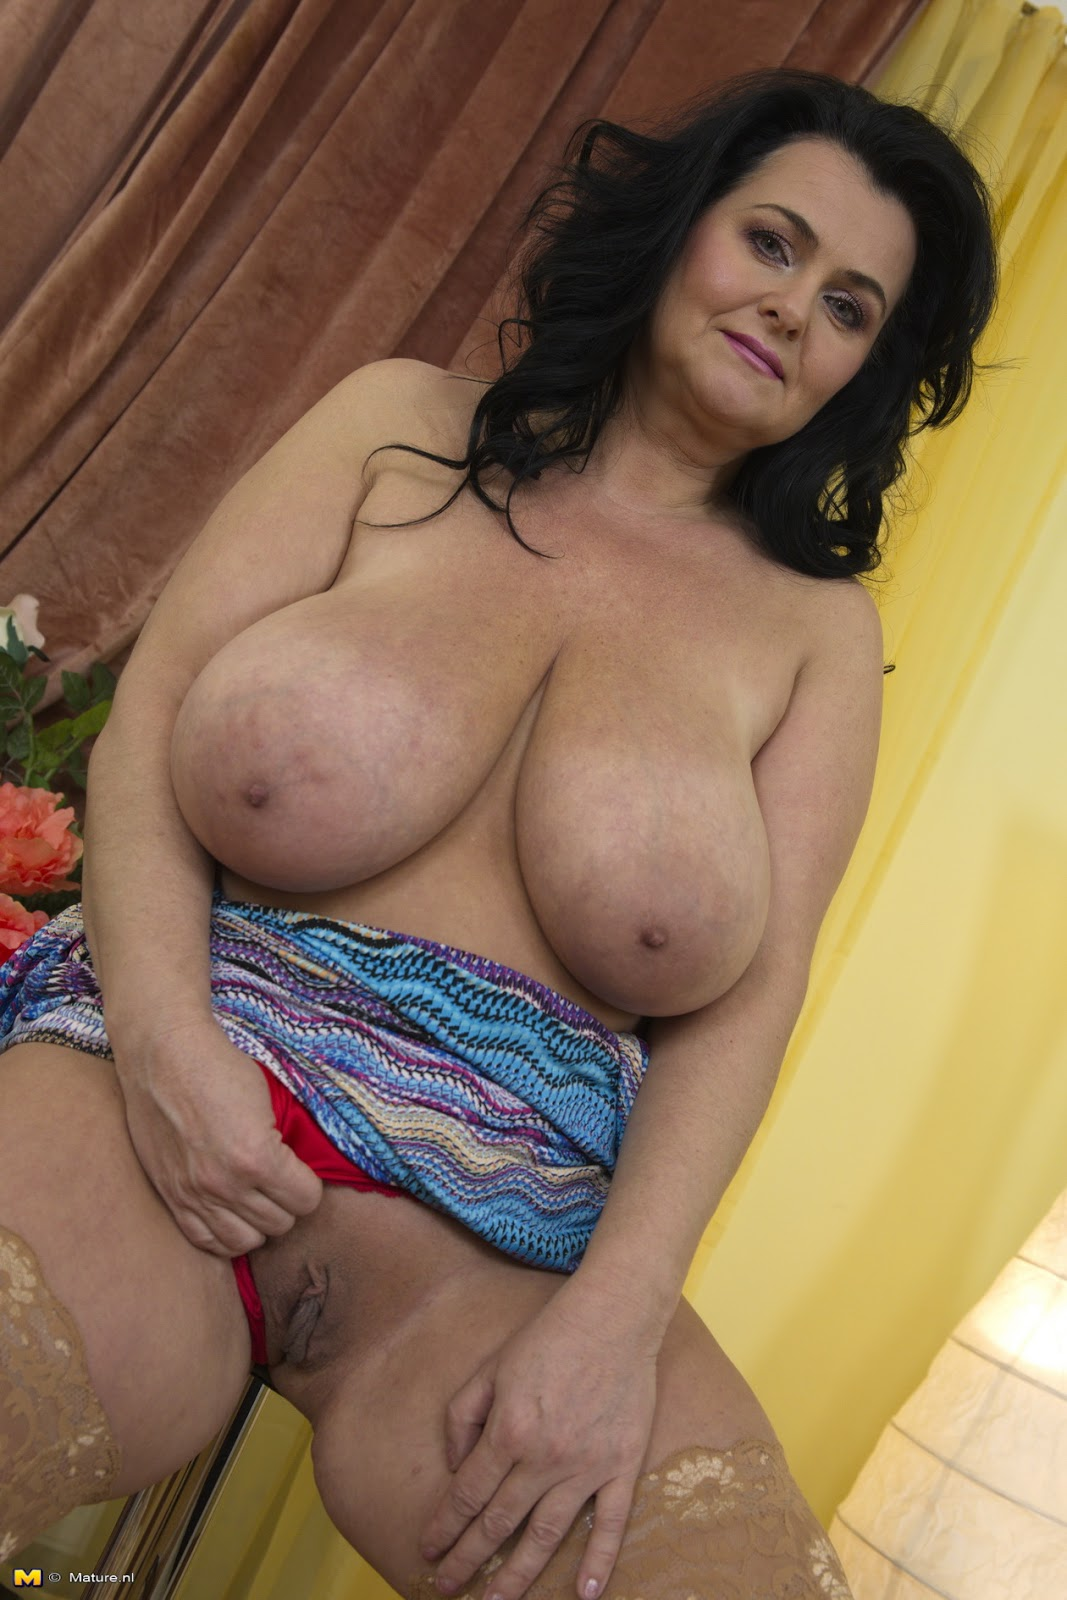 Older Women With Large Tits